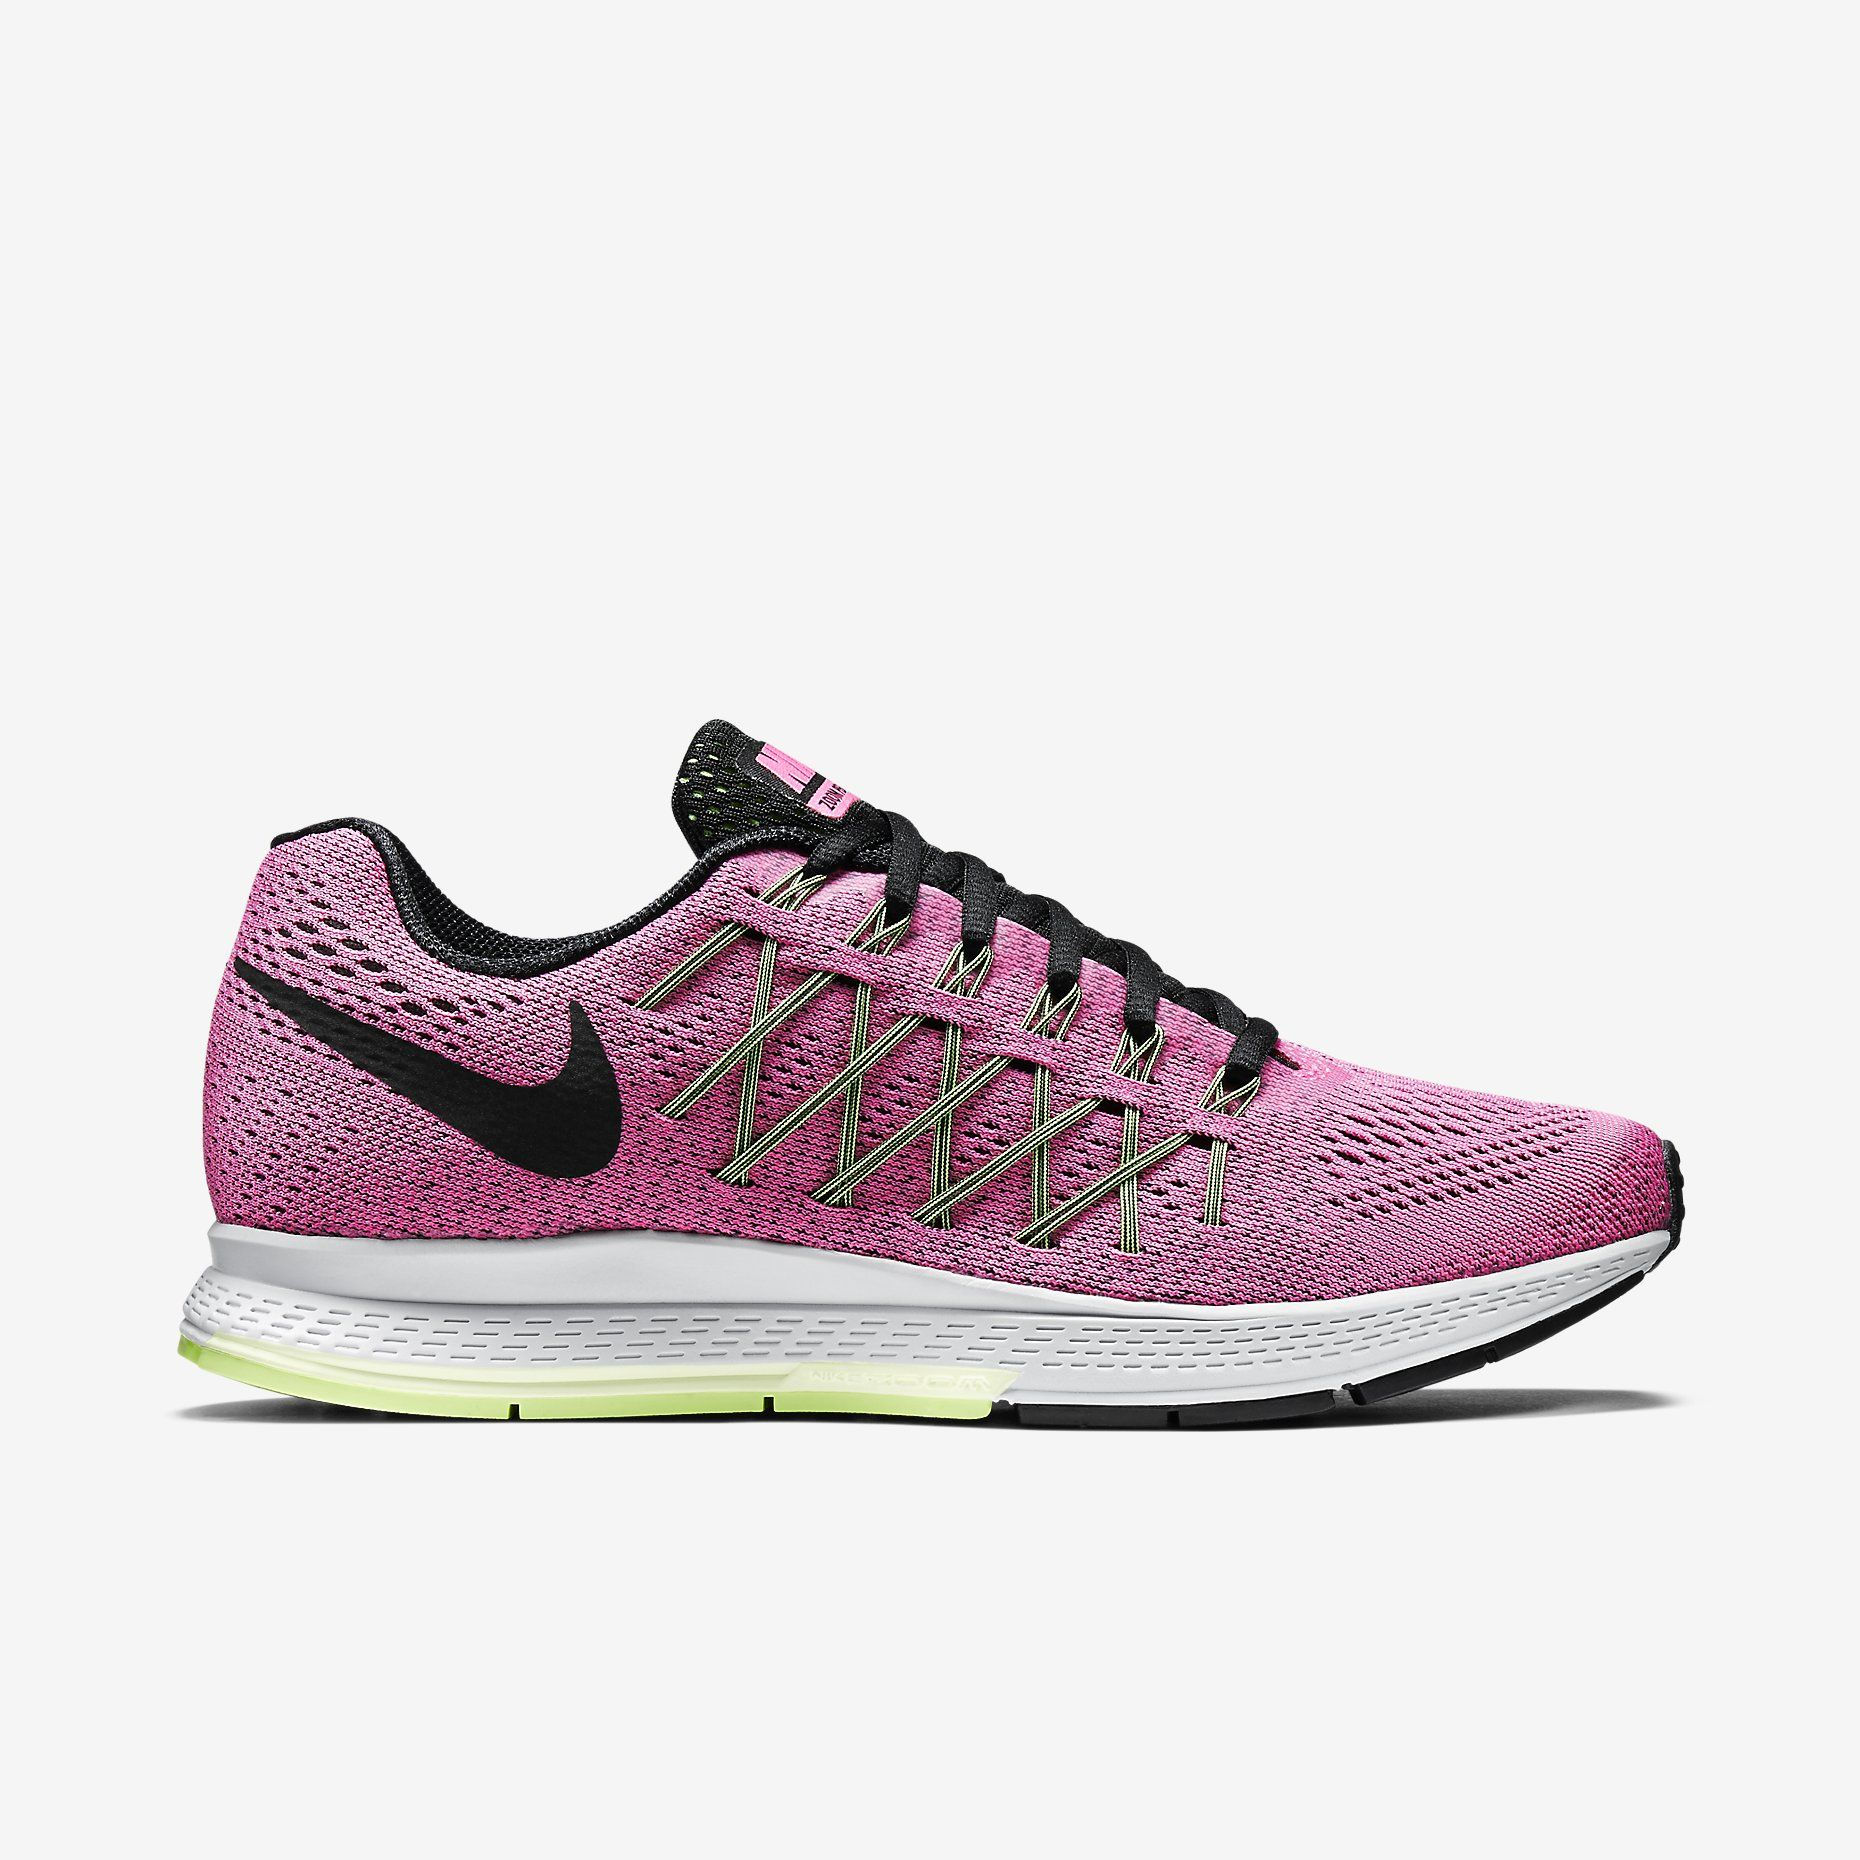 Nike Air Zoom Pegasus 32 $110 | Nike air zoom pegasus, Nike